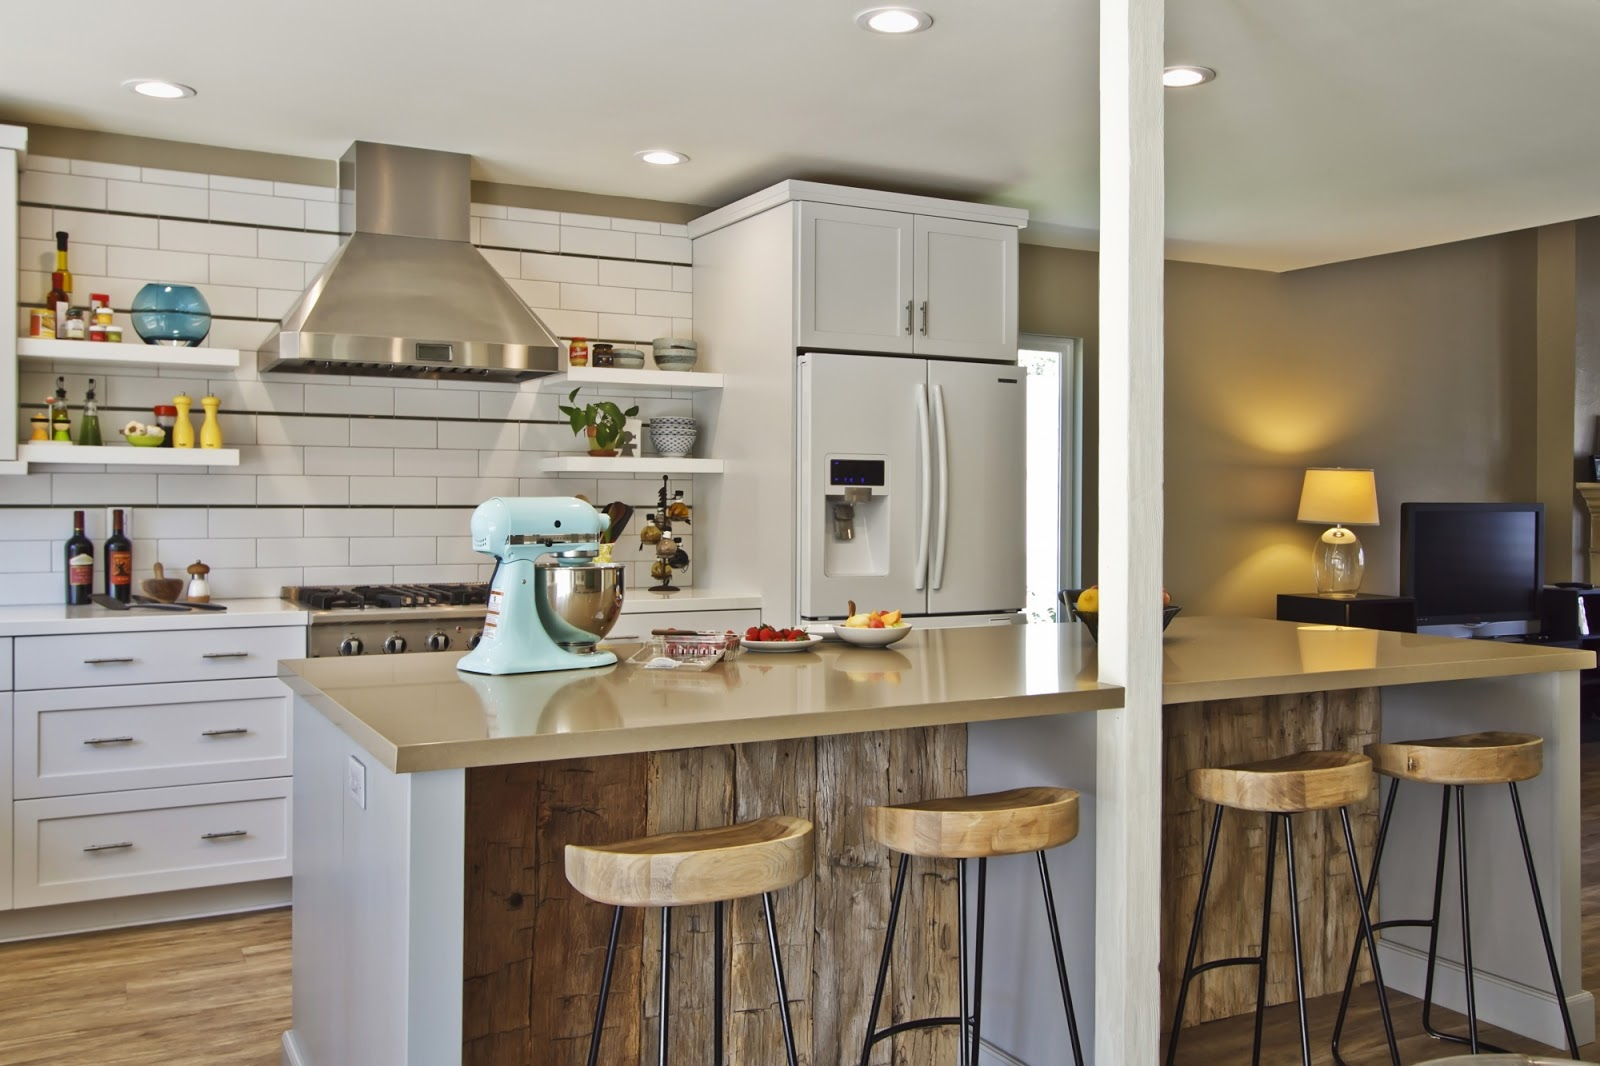 10 kitchens with quartz countertops quartz kitchen countertops Countertops are CaesarStone Notice that the island is a sand color and the stove run counters are white Photo Cultivate